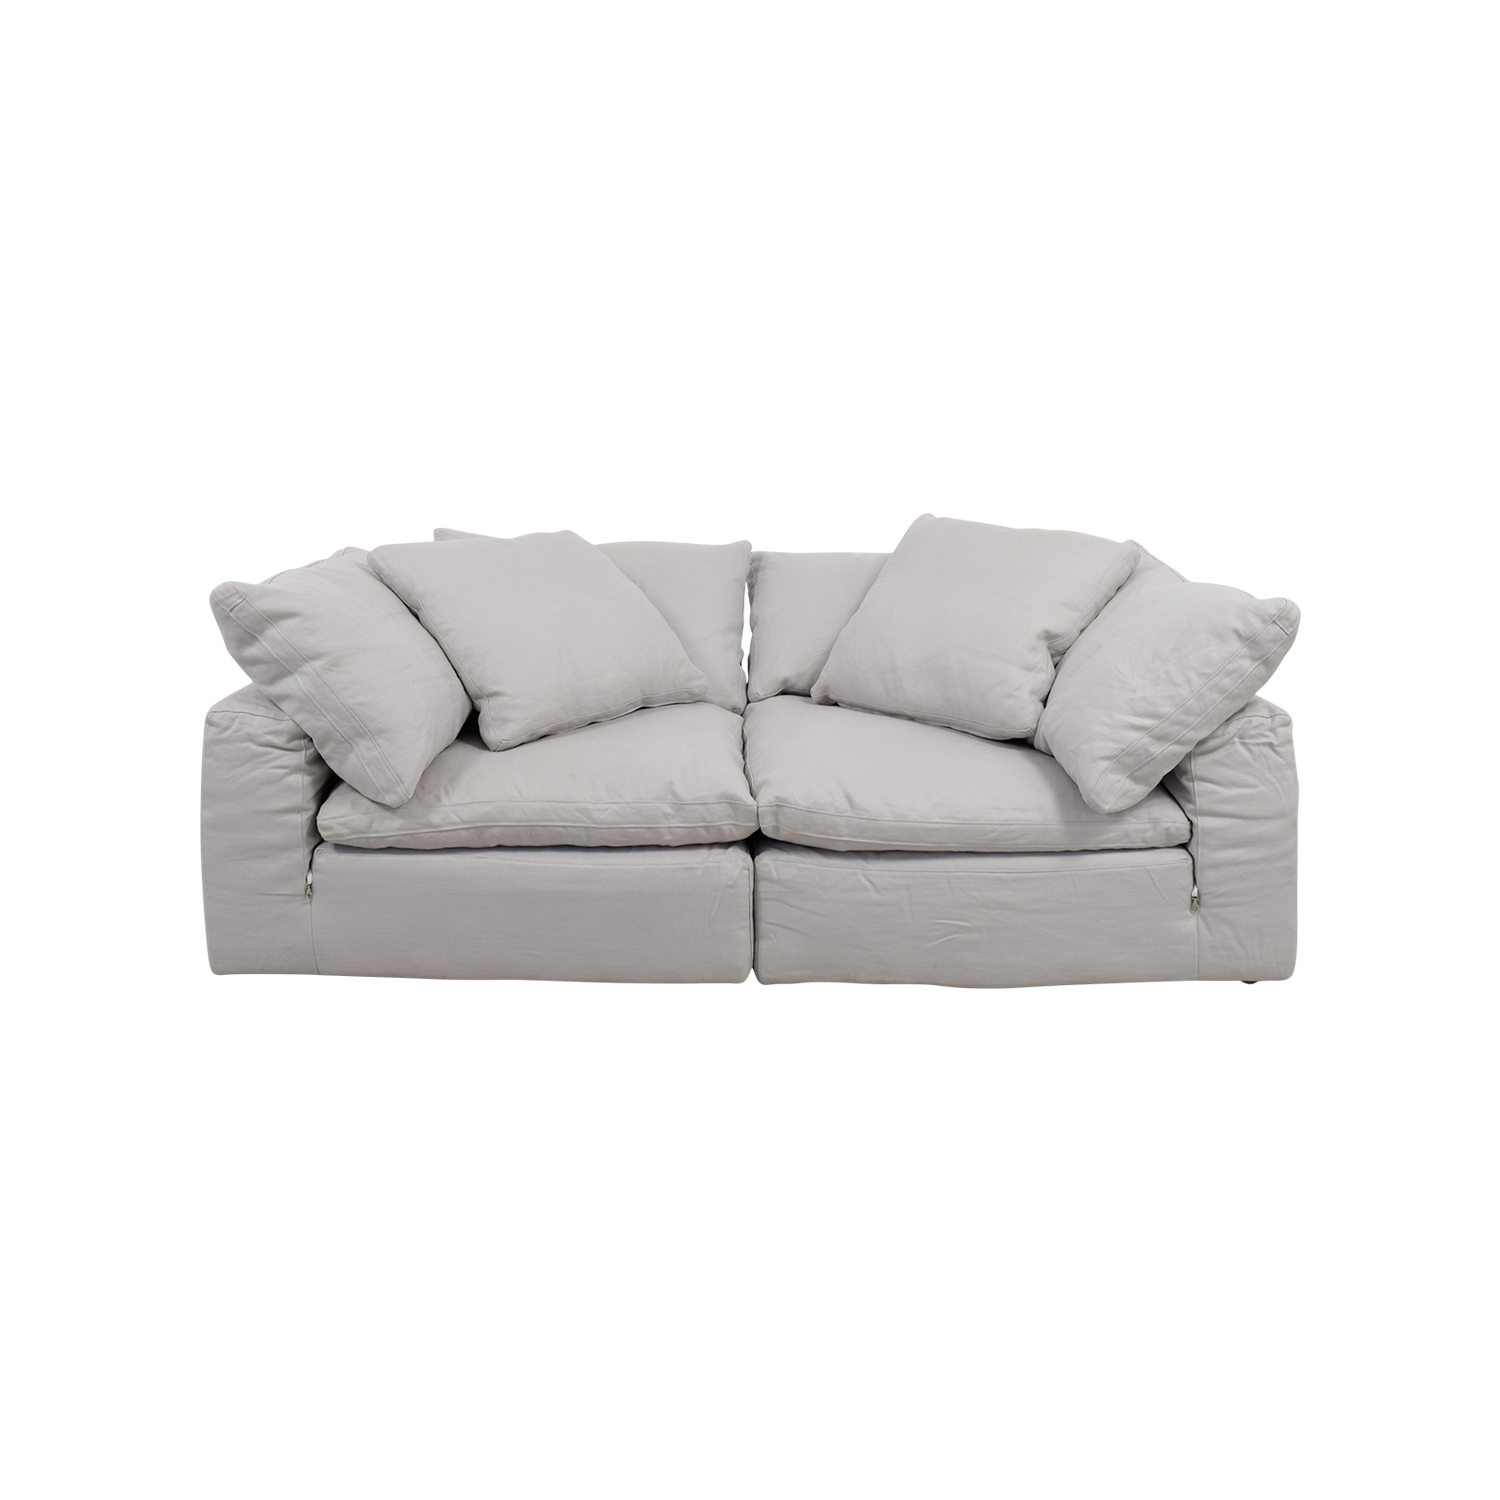 53% OFF Restoration Hardware Restoration Hardware The Cloud